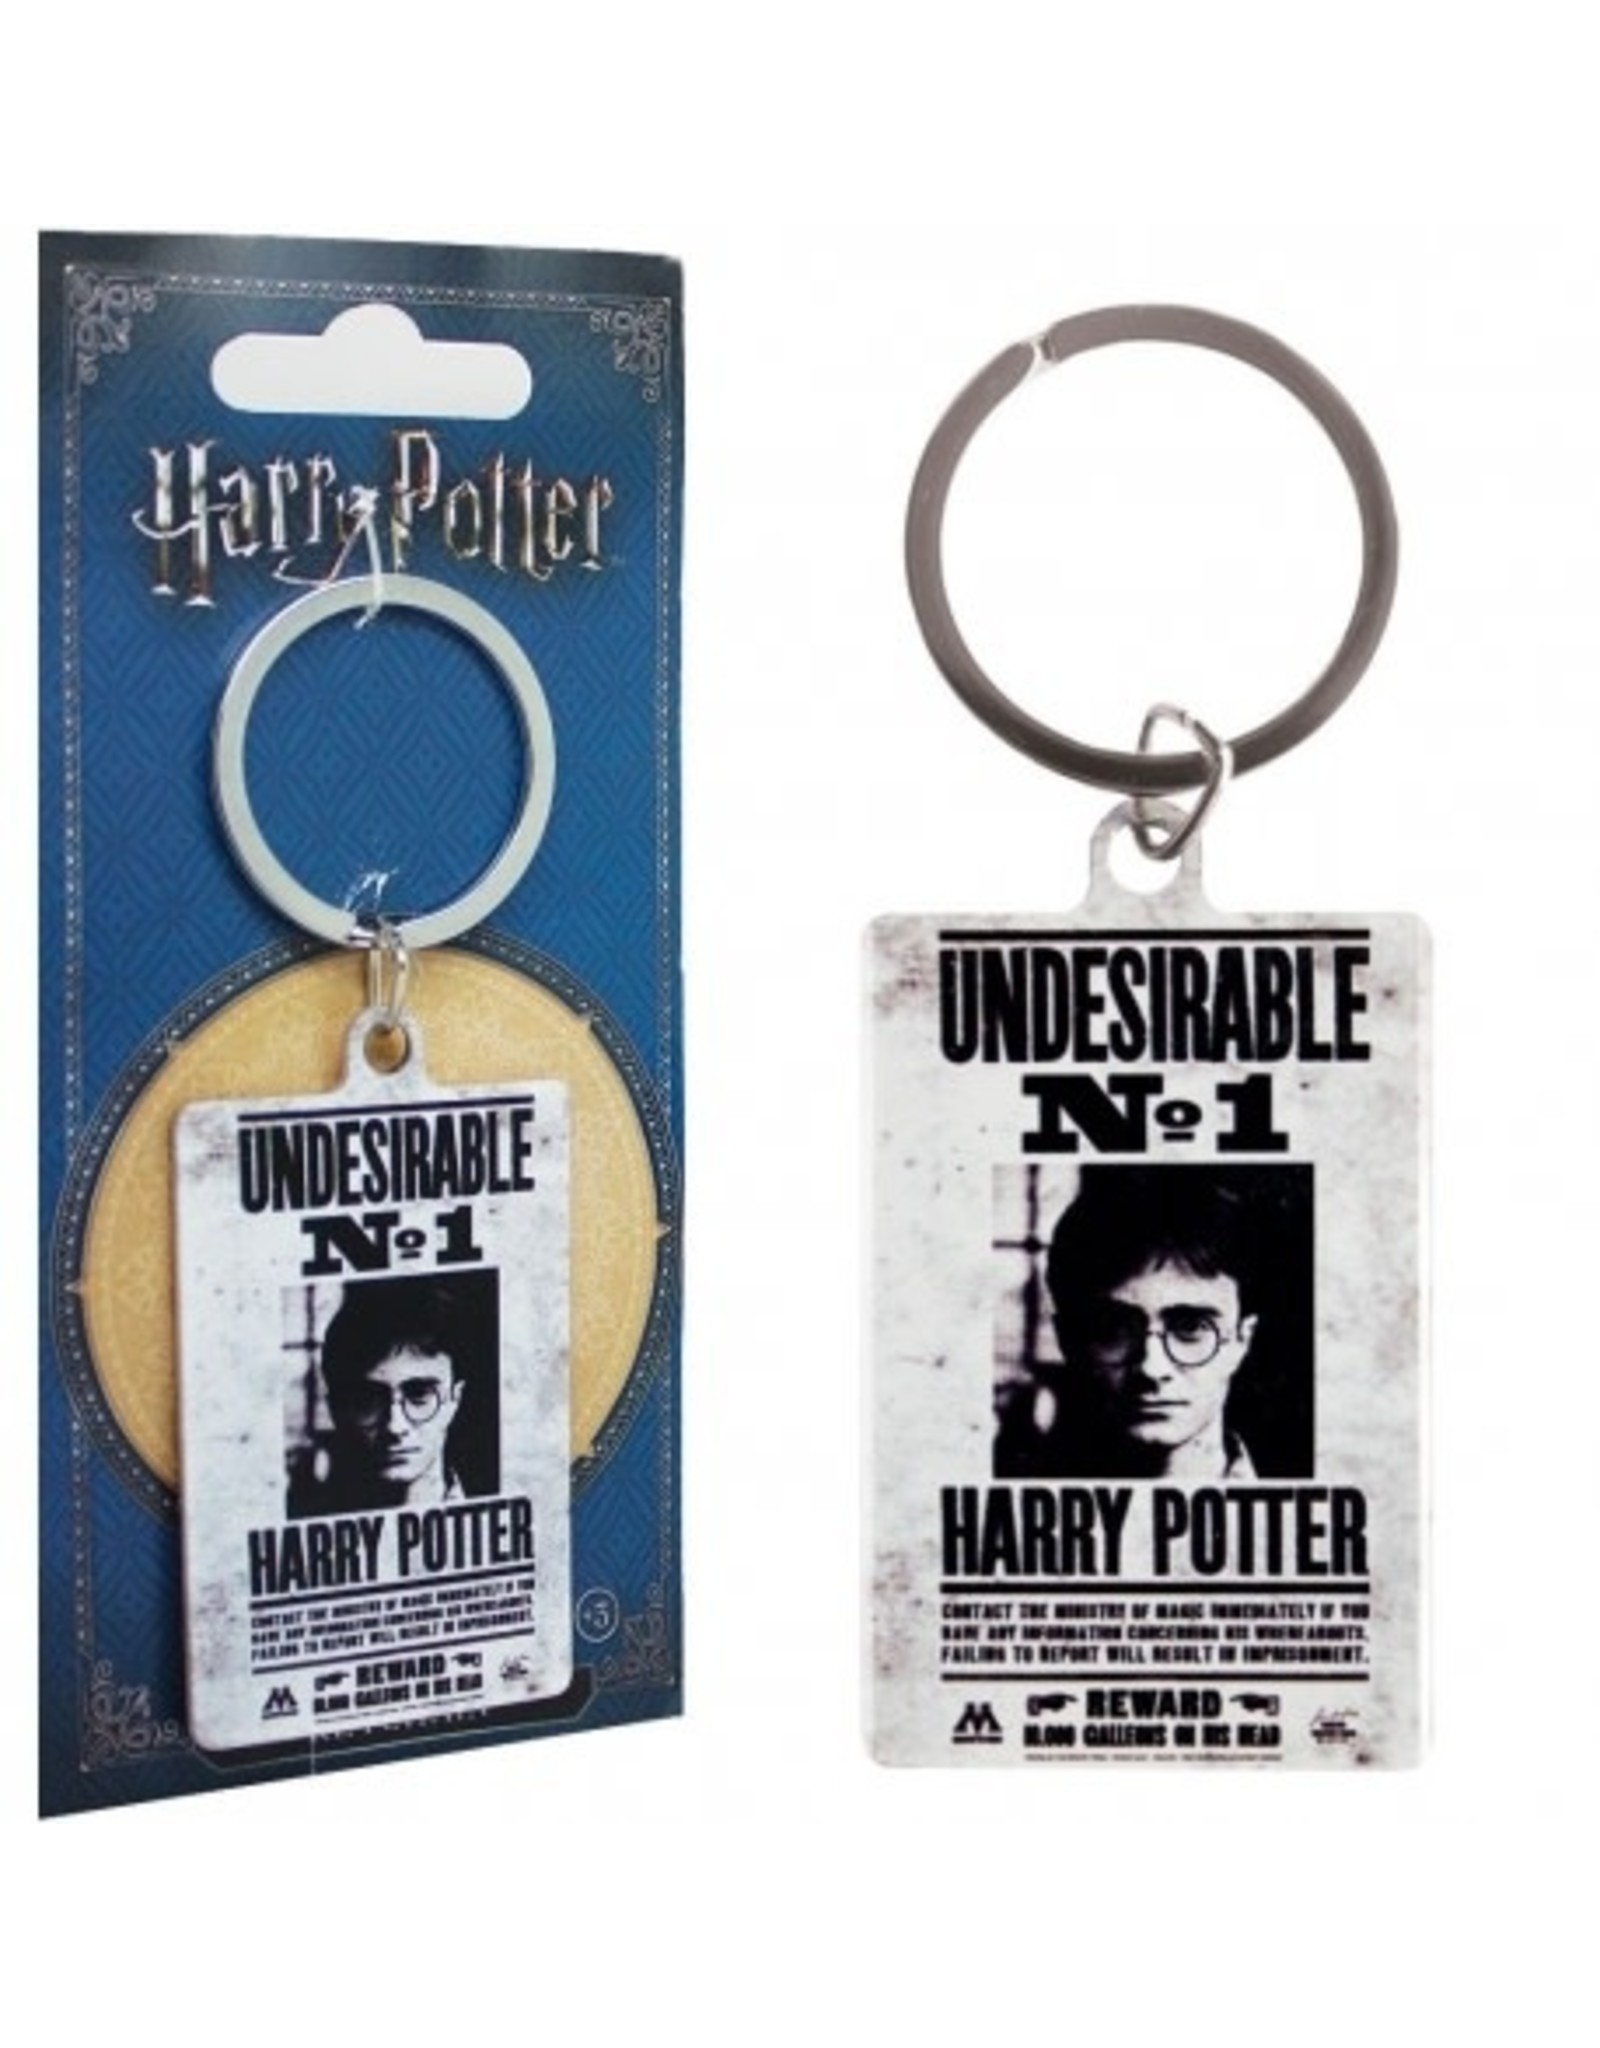 HARRY POTTER - Metal Keychain - Undesirable N°1